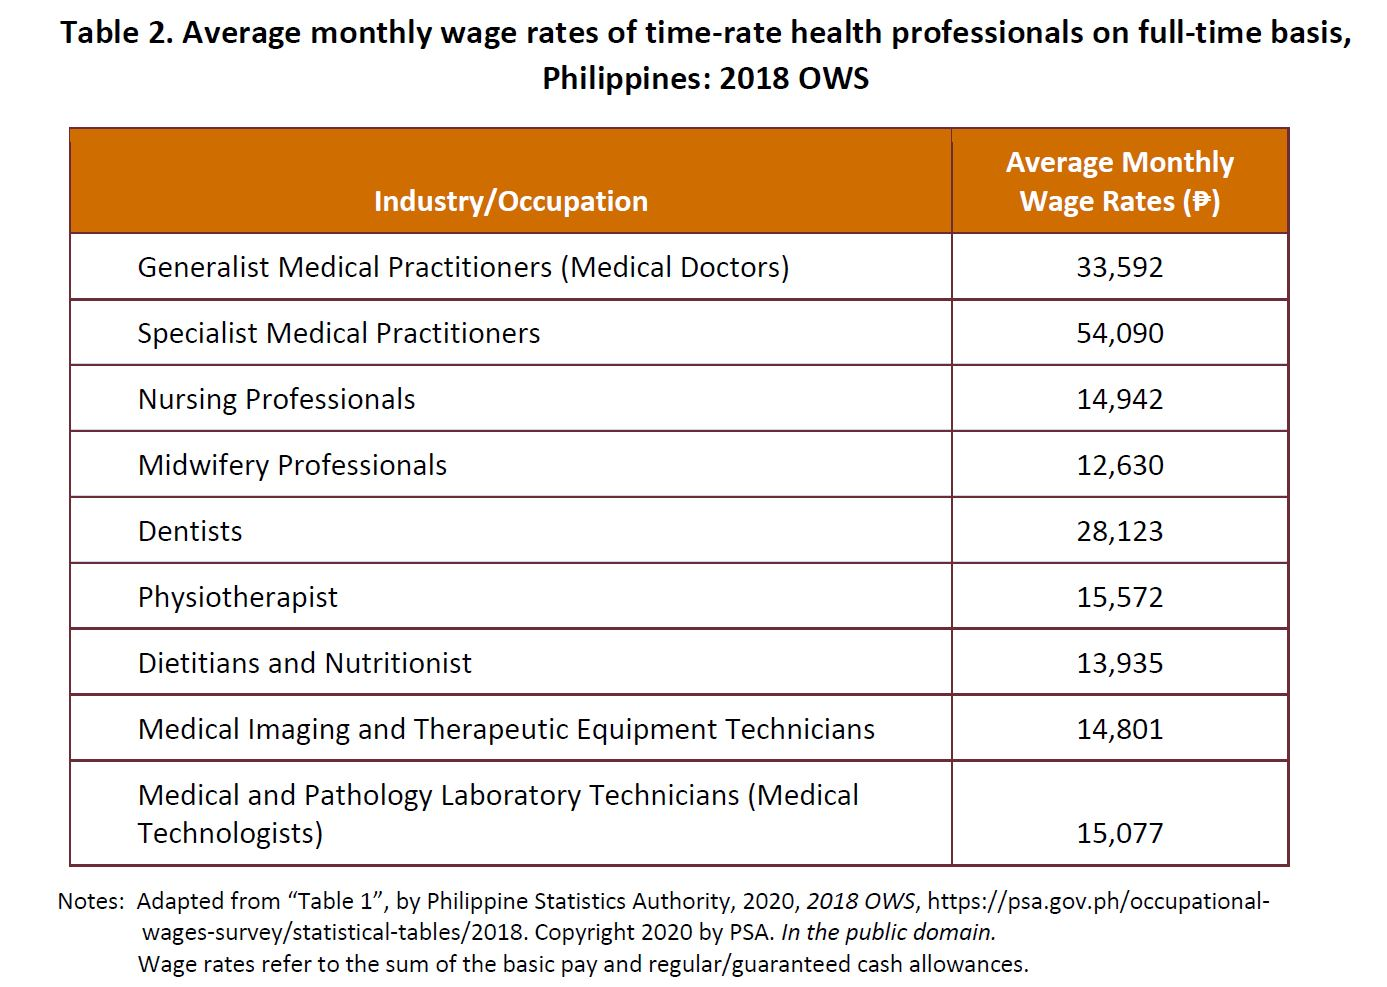 Table 2. Average monthly wage rates of time-rate health professionals on full-time basis, Philippines: 2018 OWS